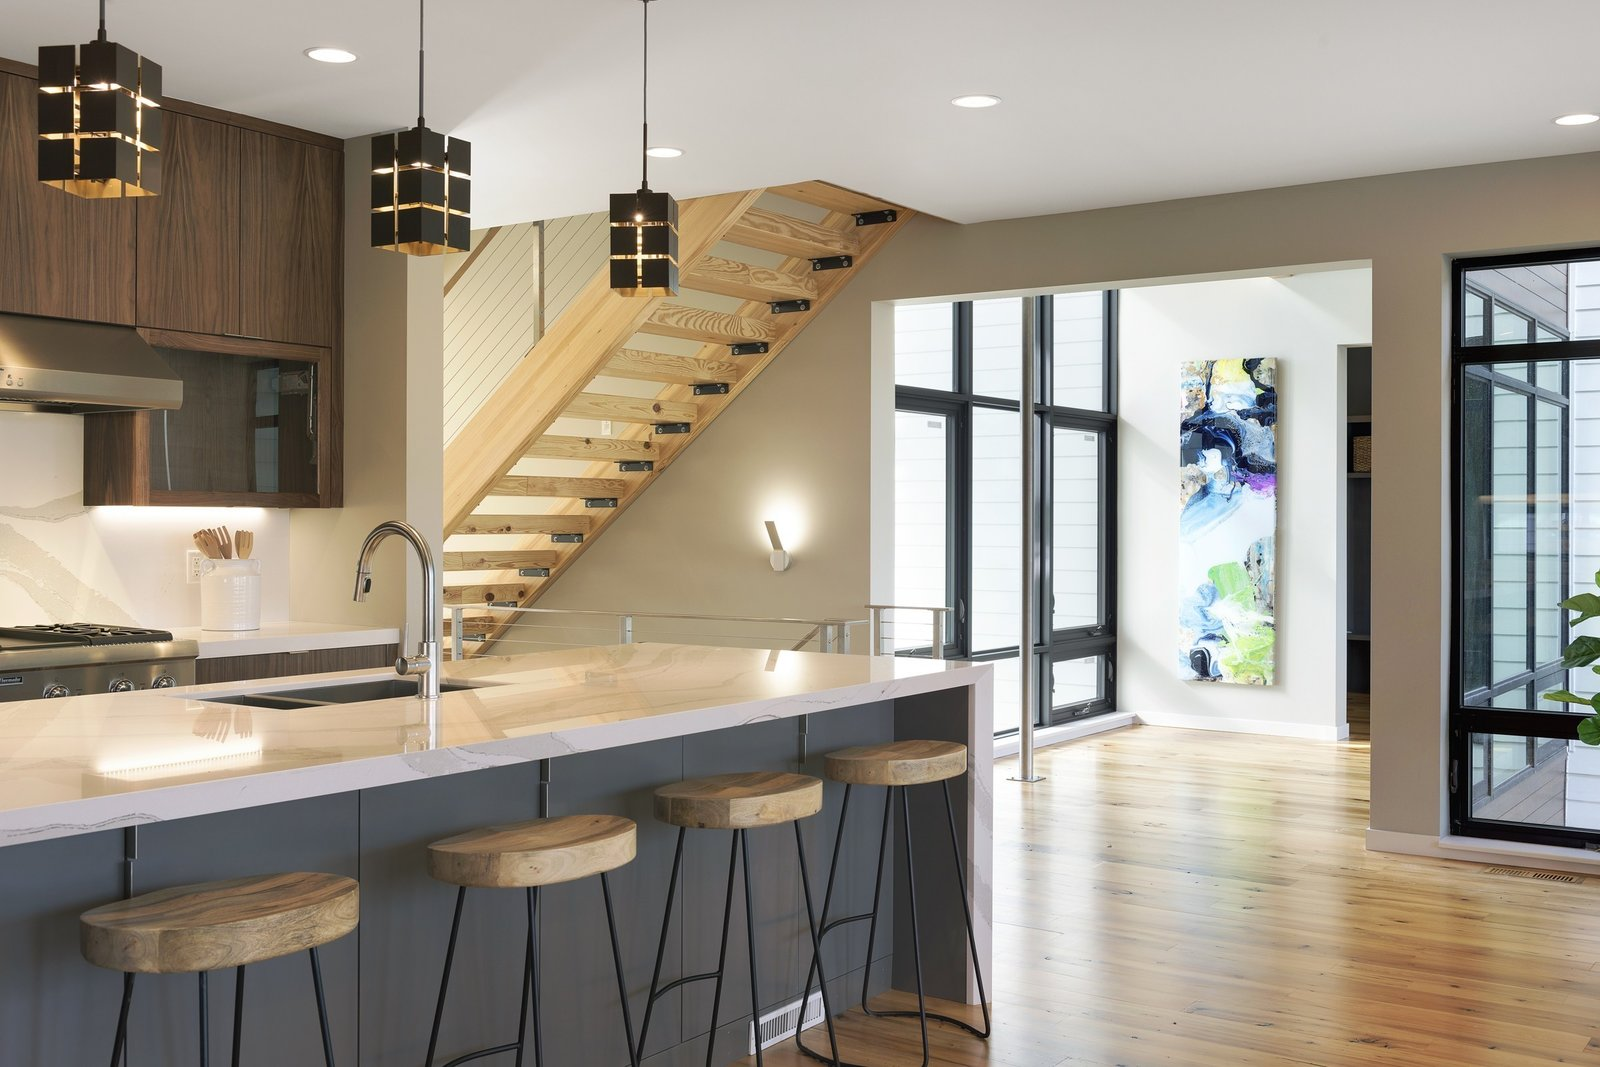 """Photo 8 of 11 in Minneapolis Modern """"Dream Home"""" Built by Sustainable 9 Design + Build"""